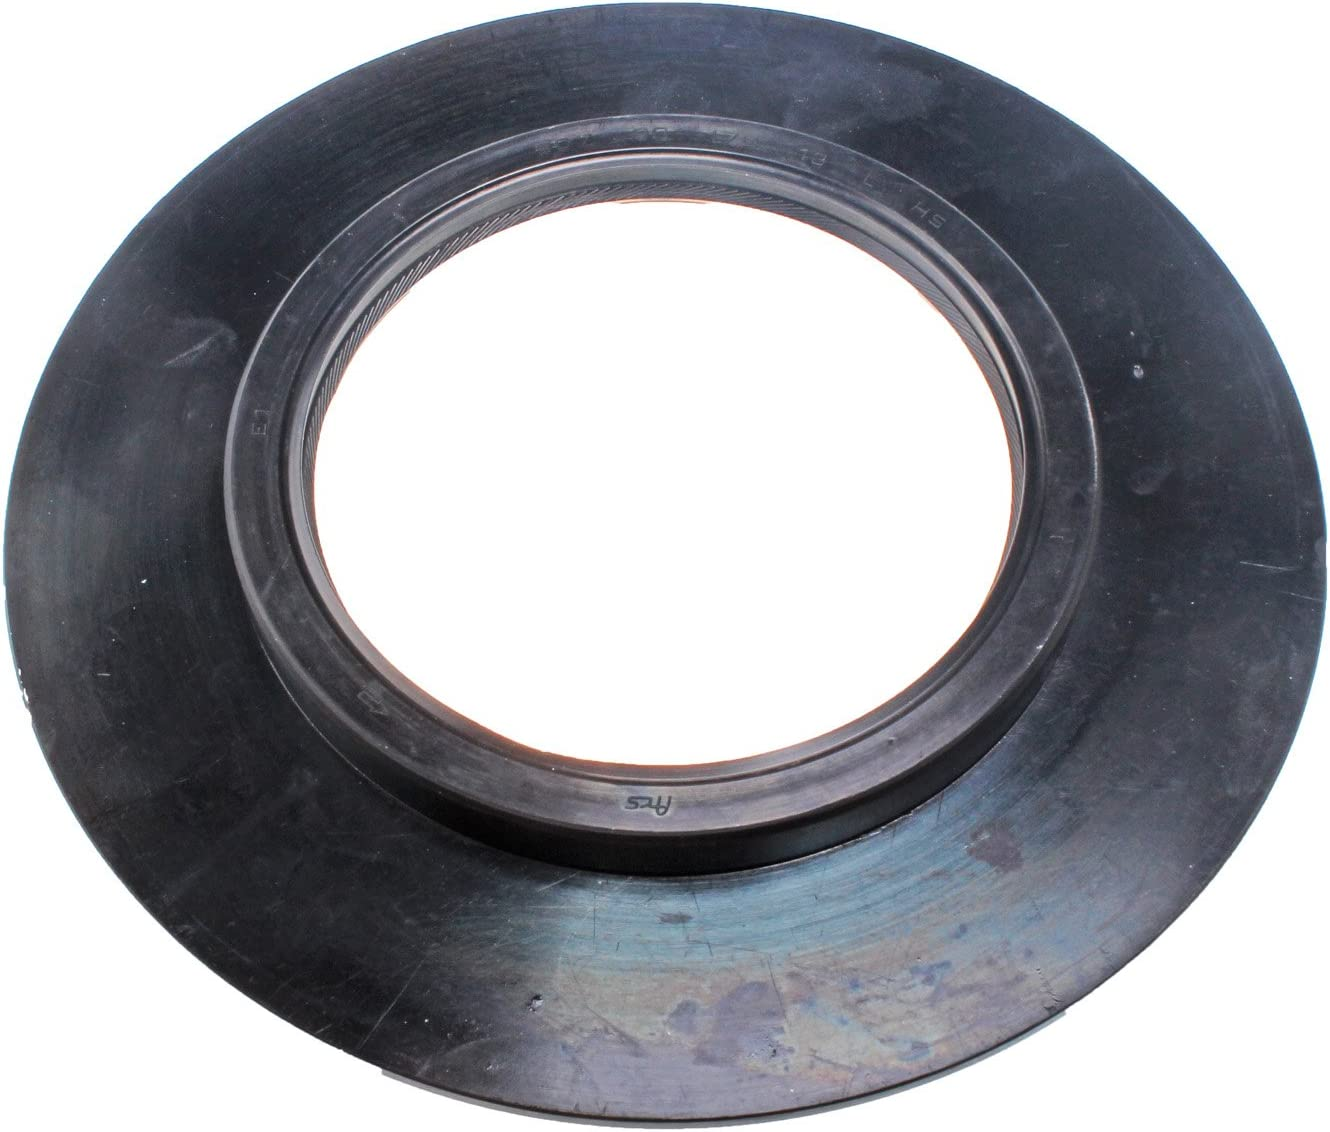 Mover Parts Rear End Oil Seal for Perkins Engine 103-12 103-13 103-15D 104-19D 104-22